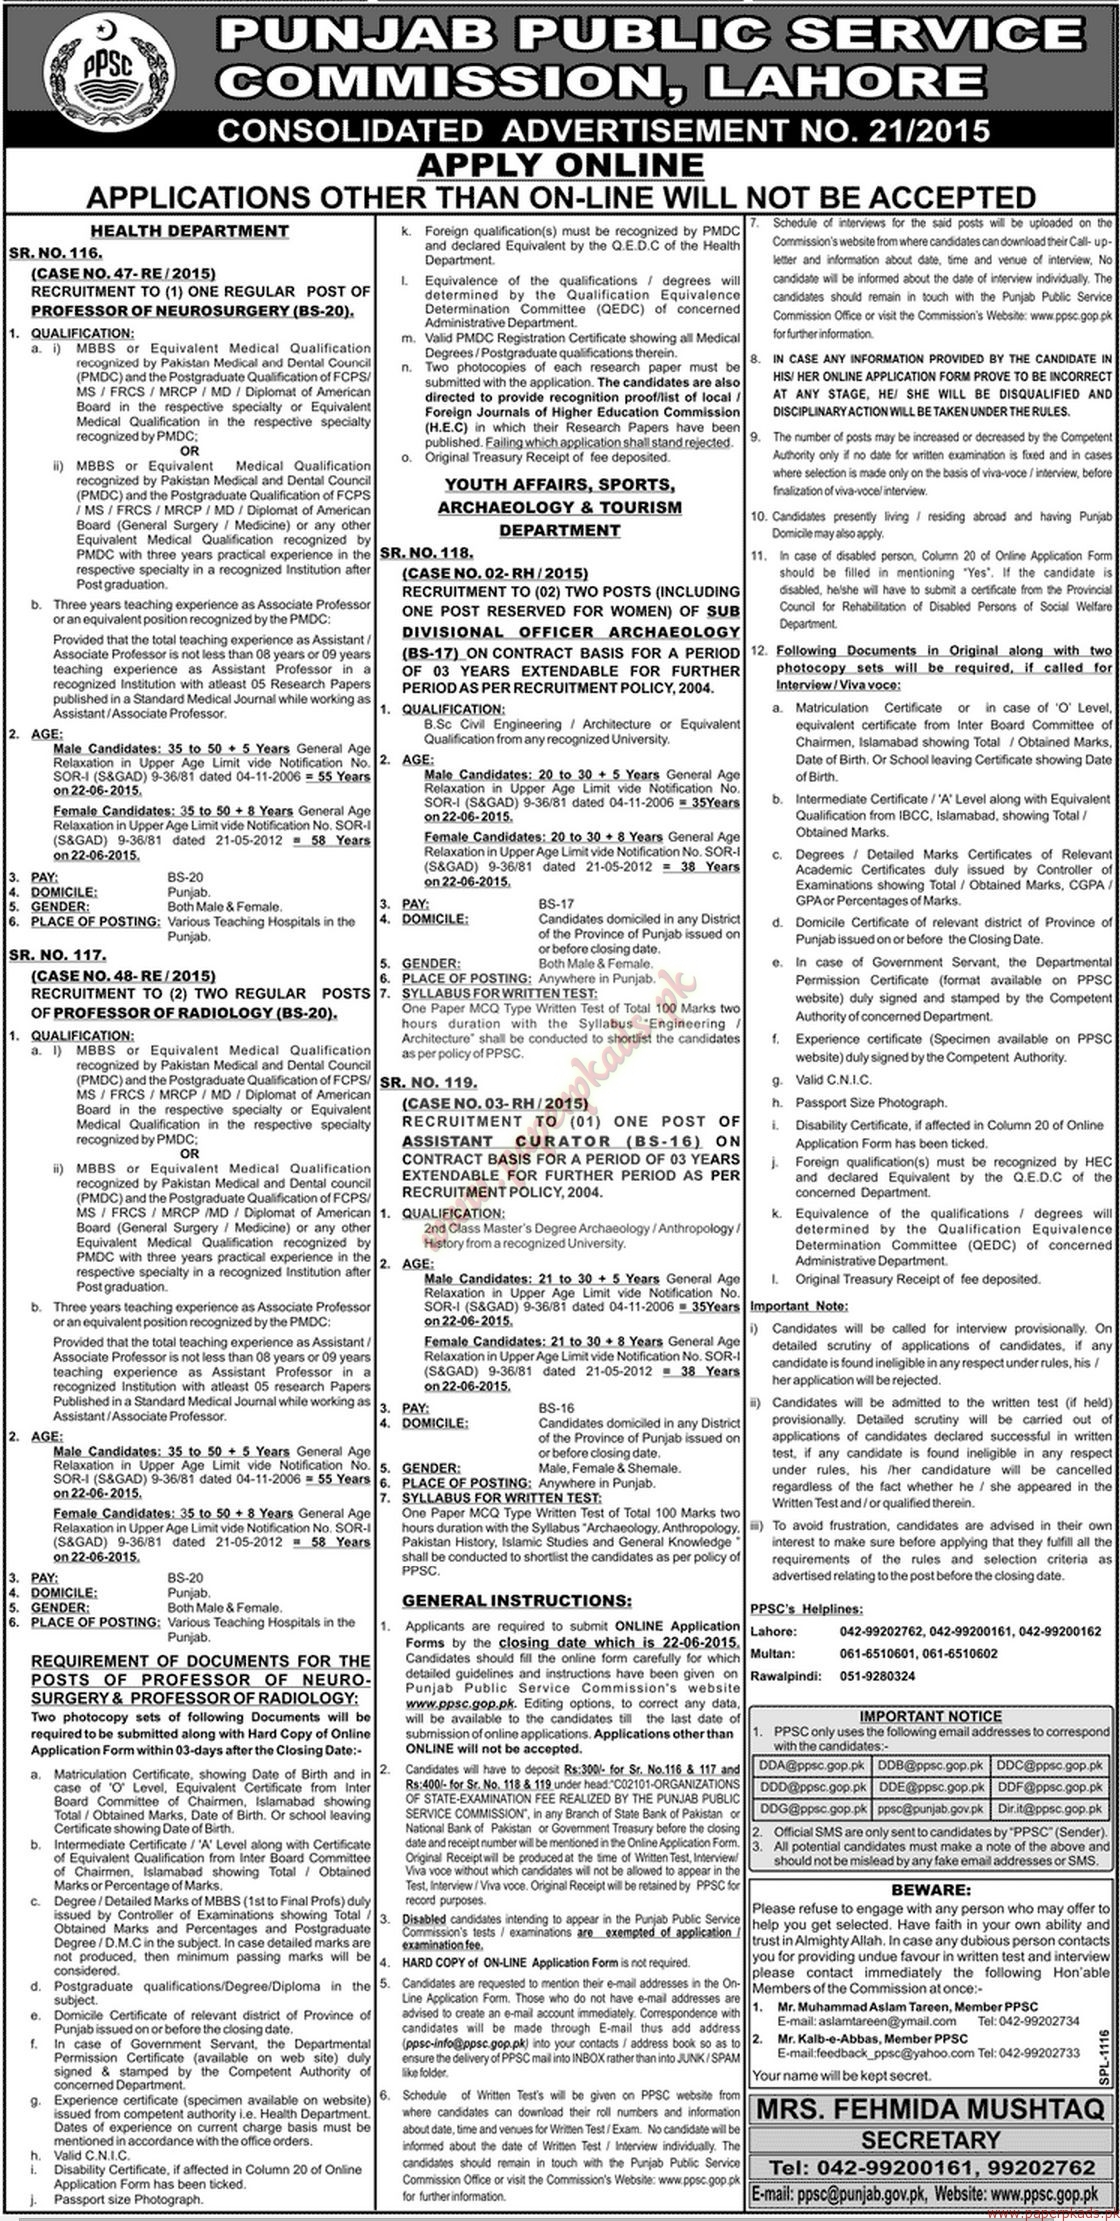 Punjab Public Service Commission Lahore Jobs - Jang Jobs ads 07 June 2015